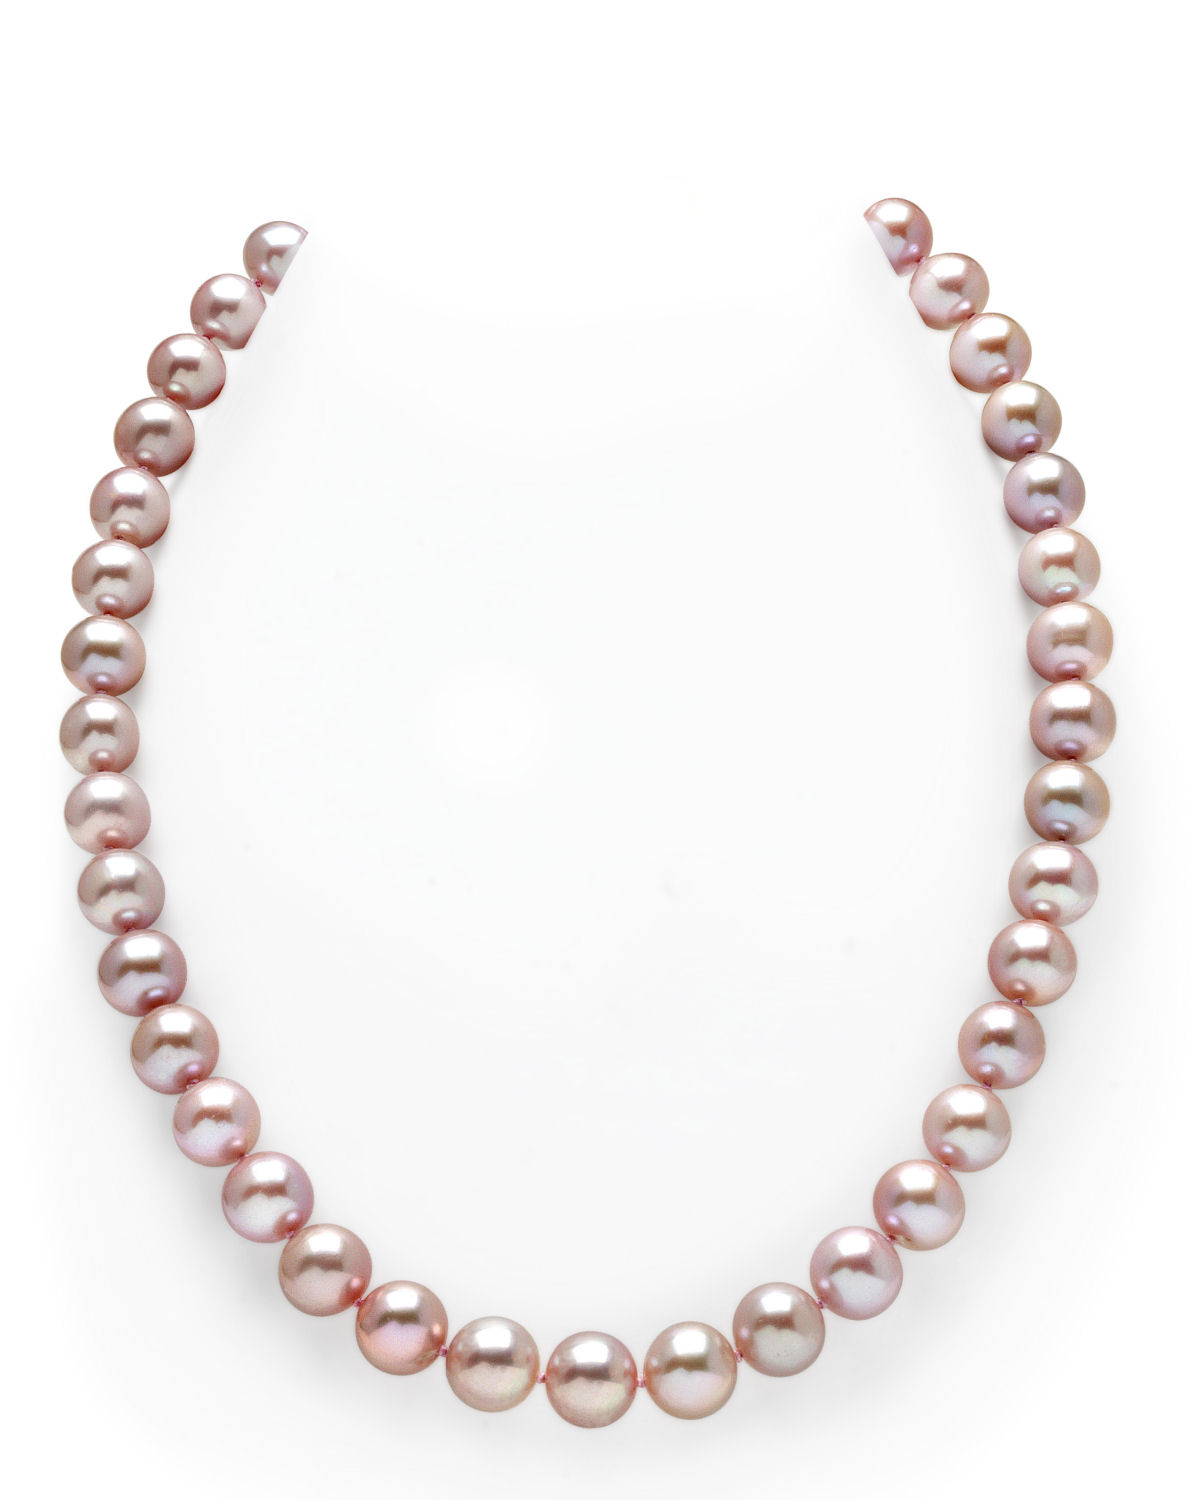 10-11mm Pink Freshwater Pearl Necklace - AAAA Quality